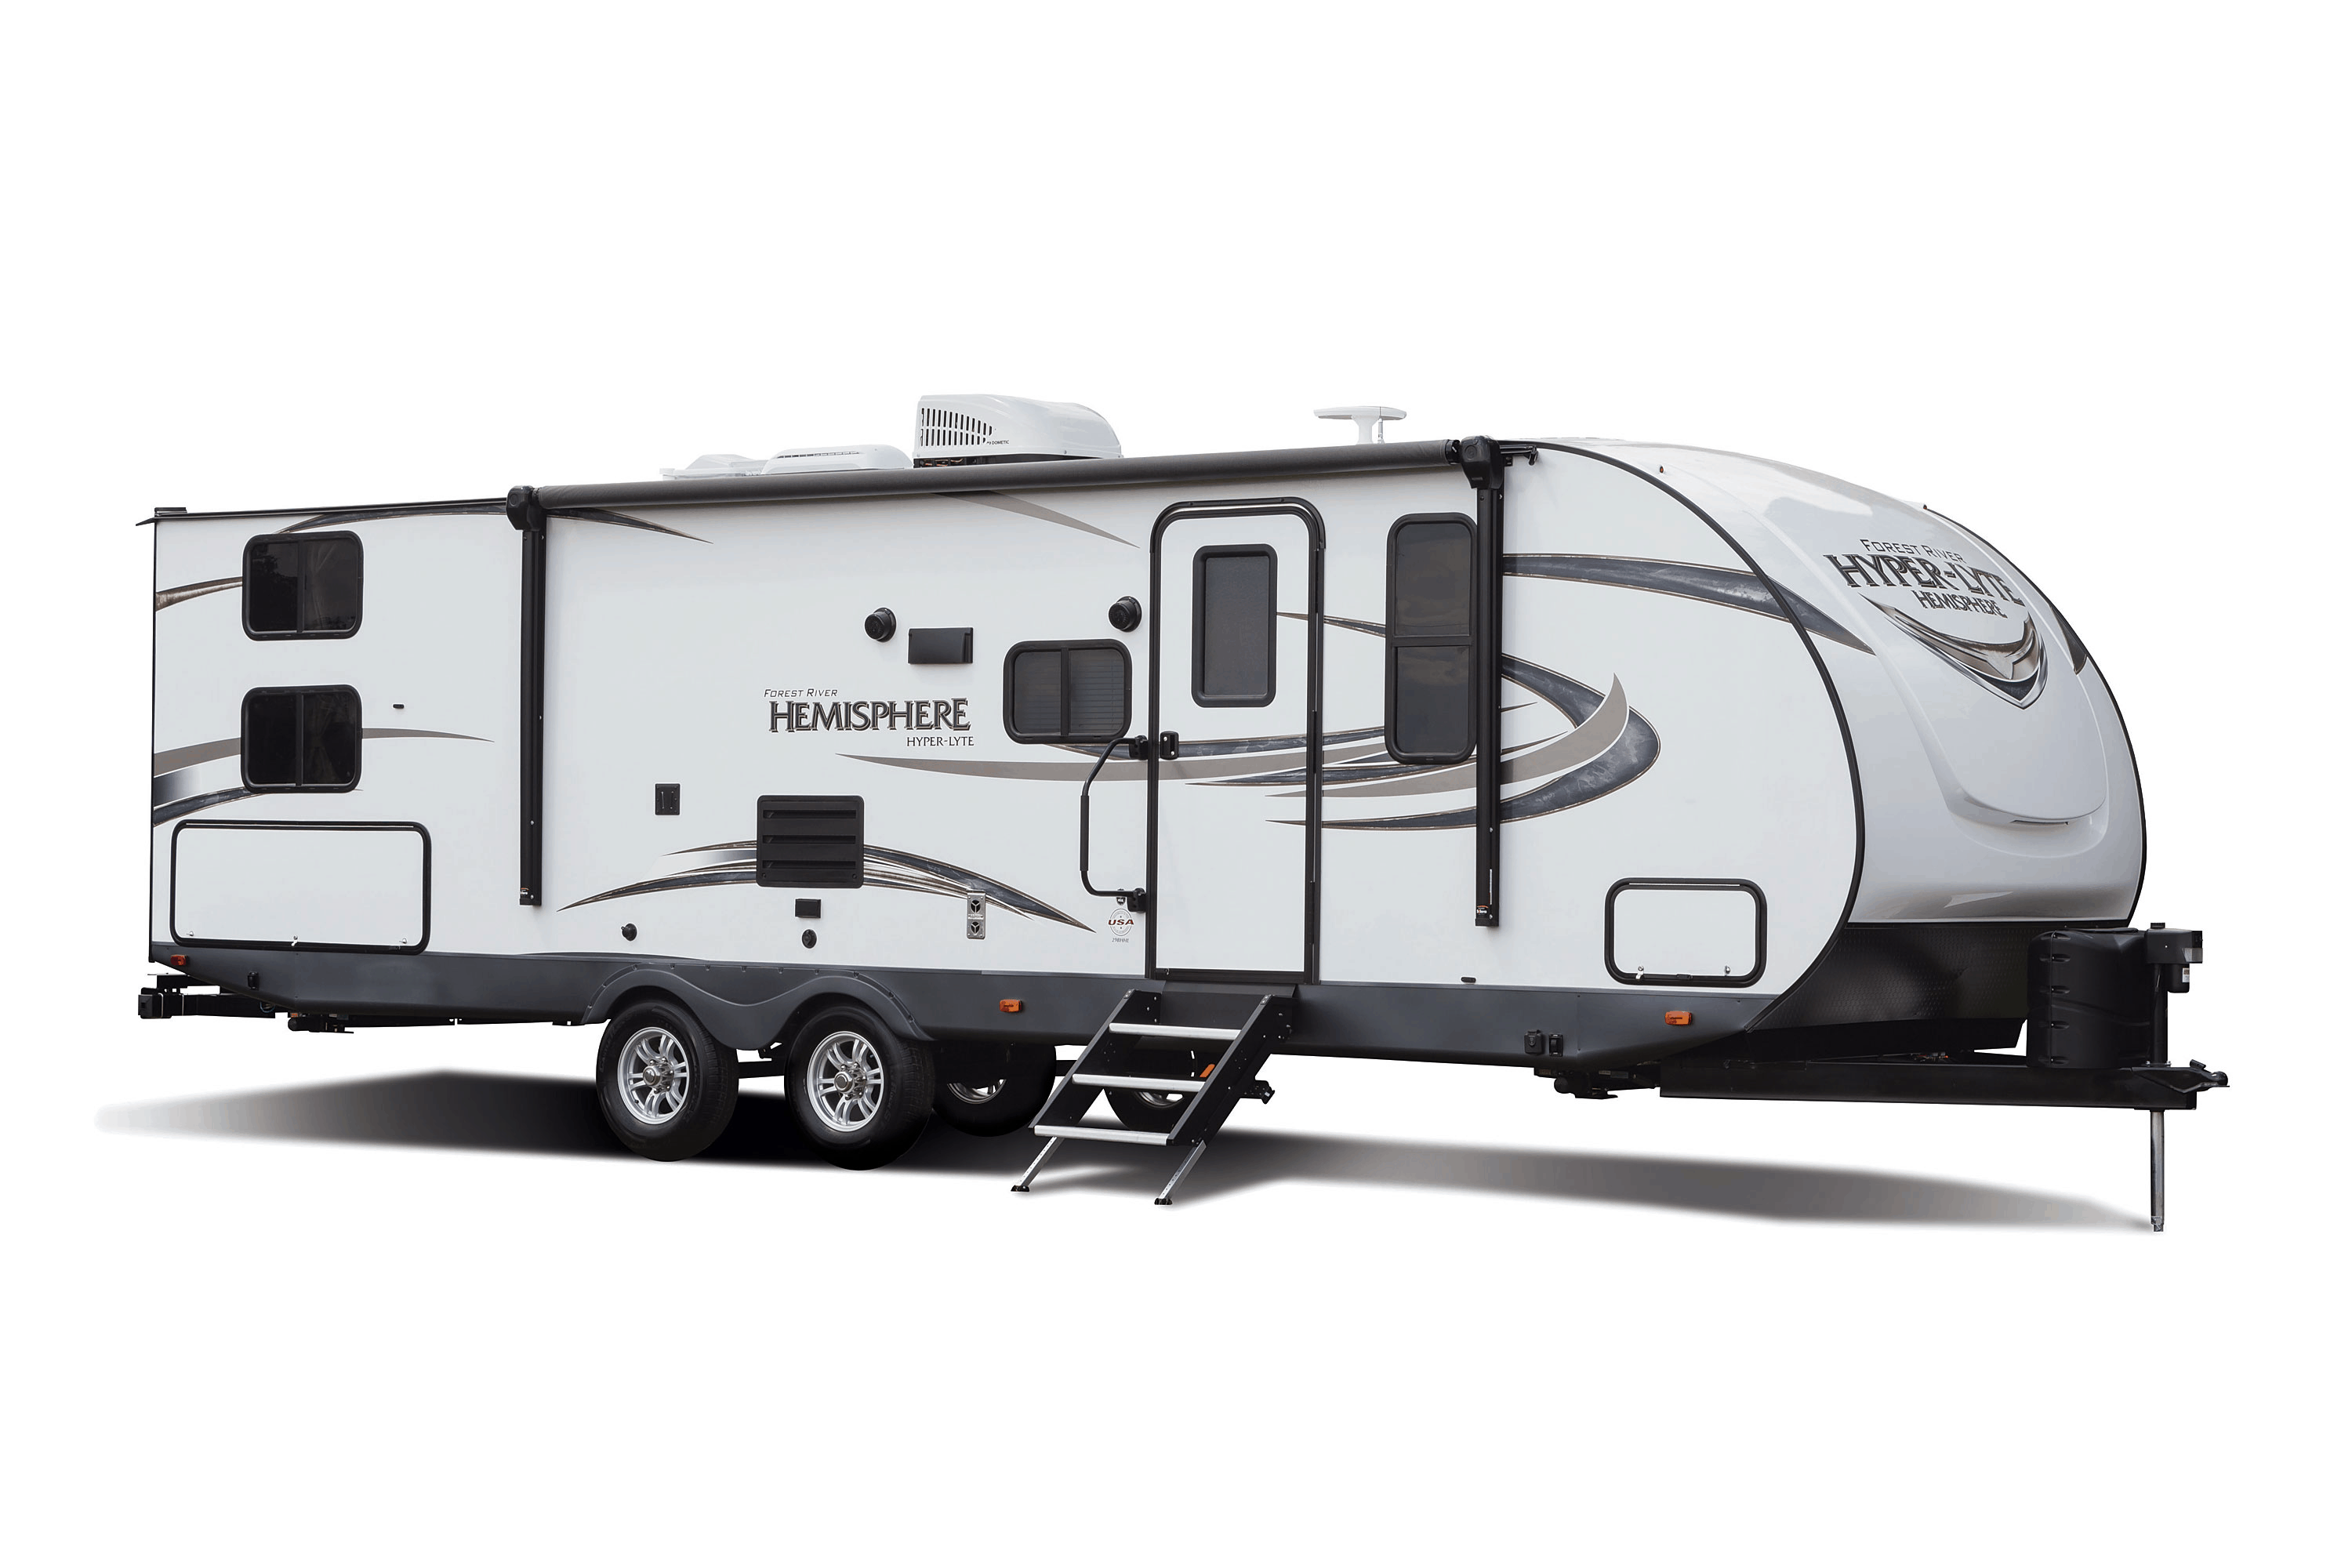 Hemisphere Travel Trailer